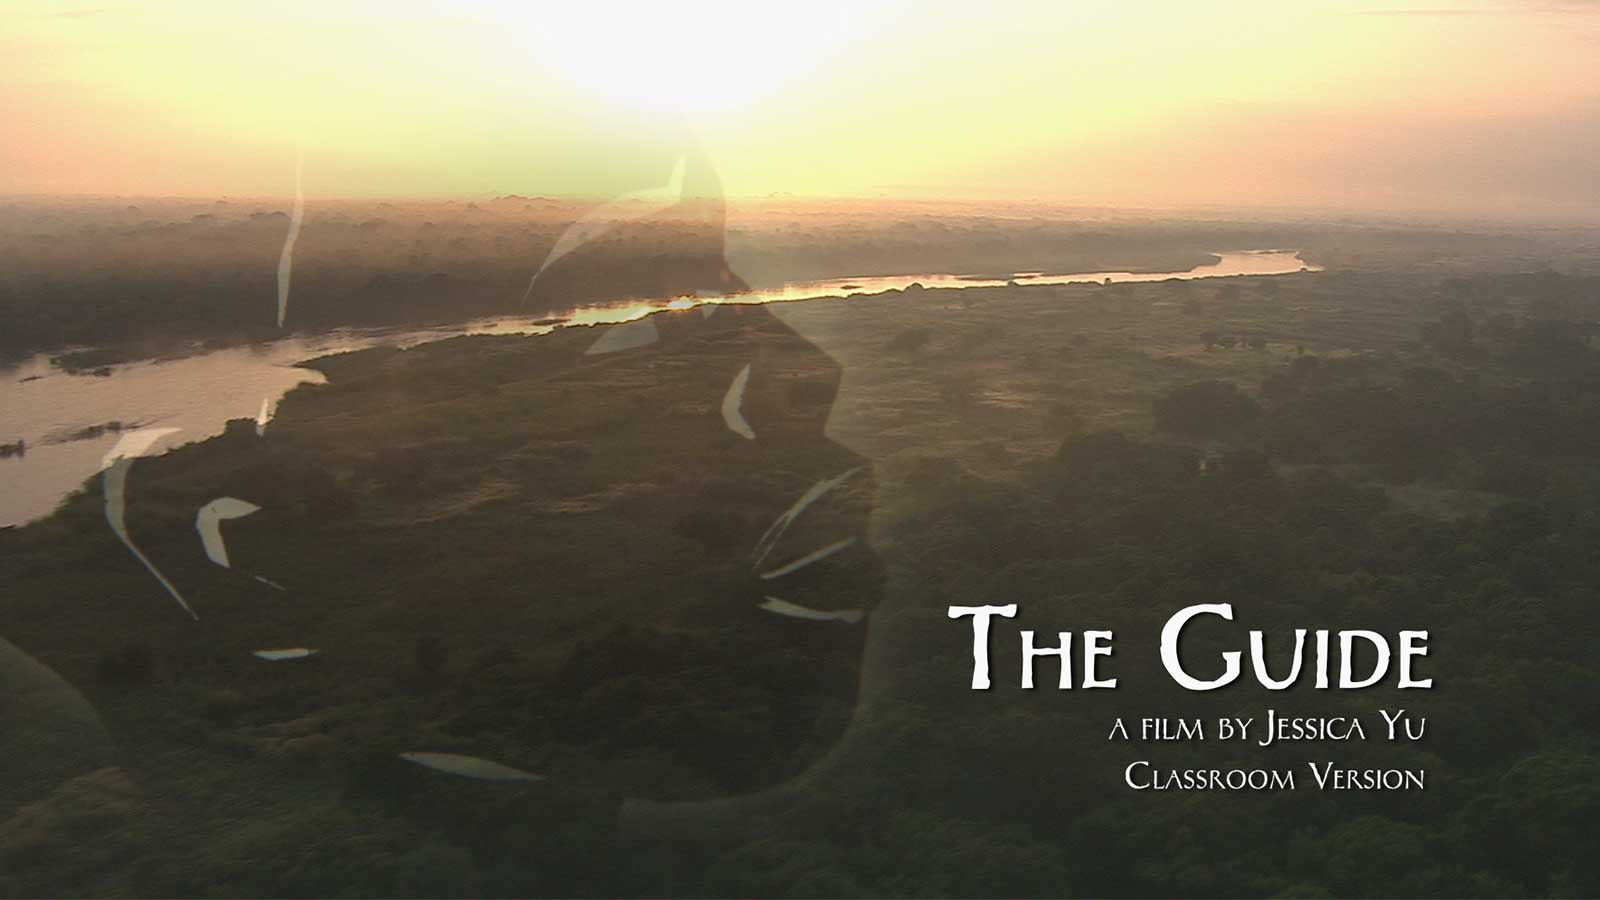 the guide title screen